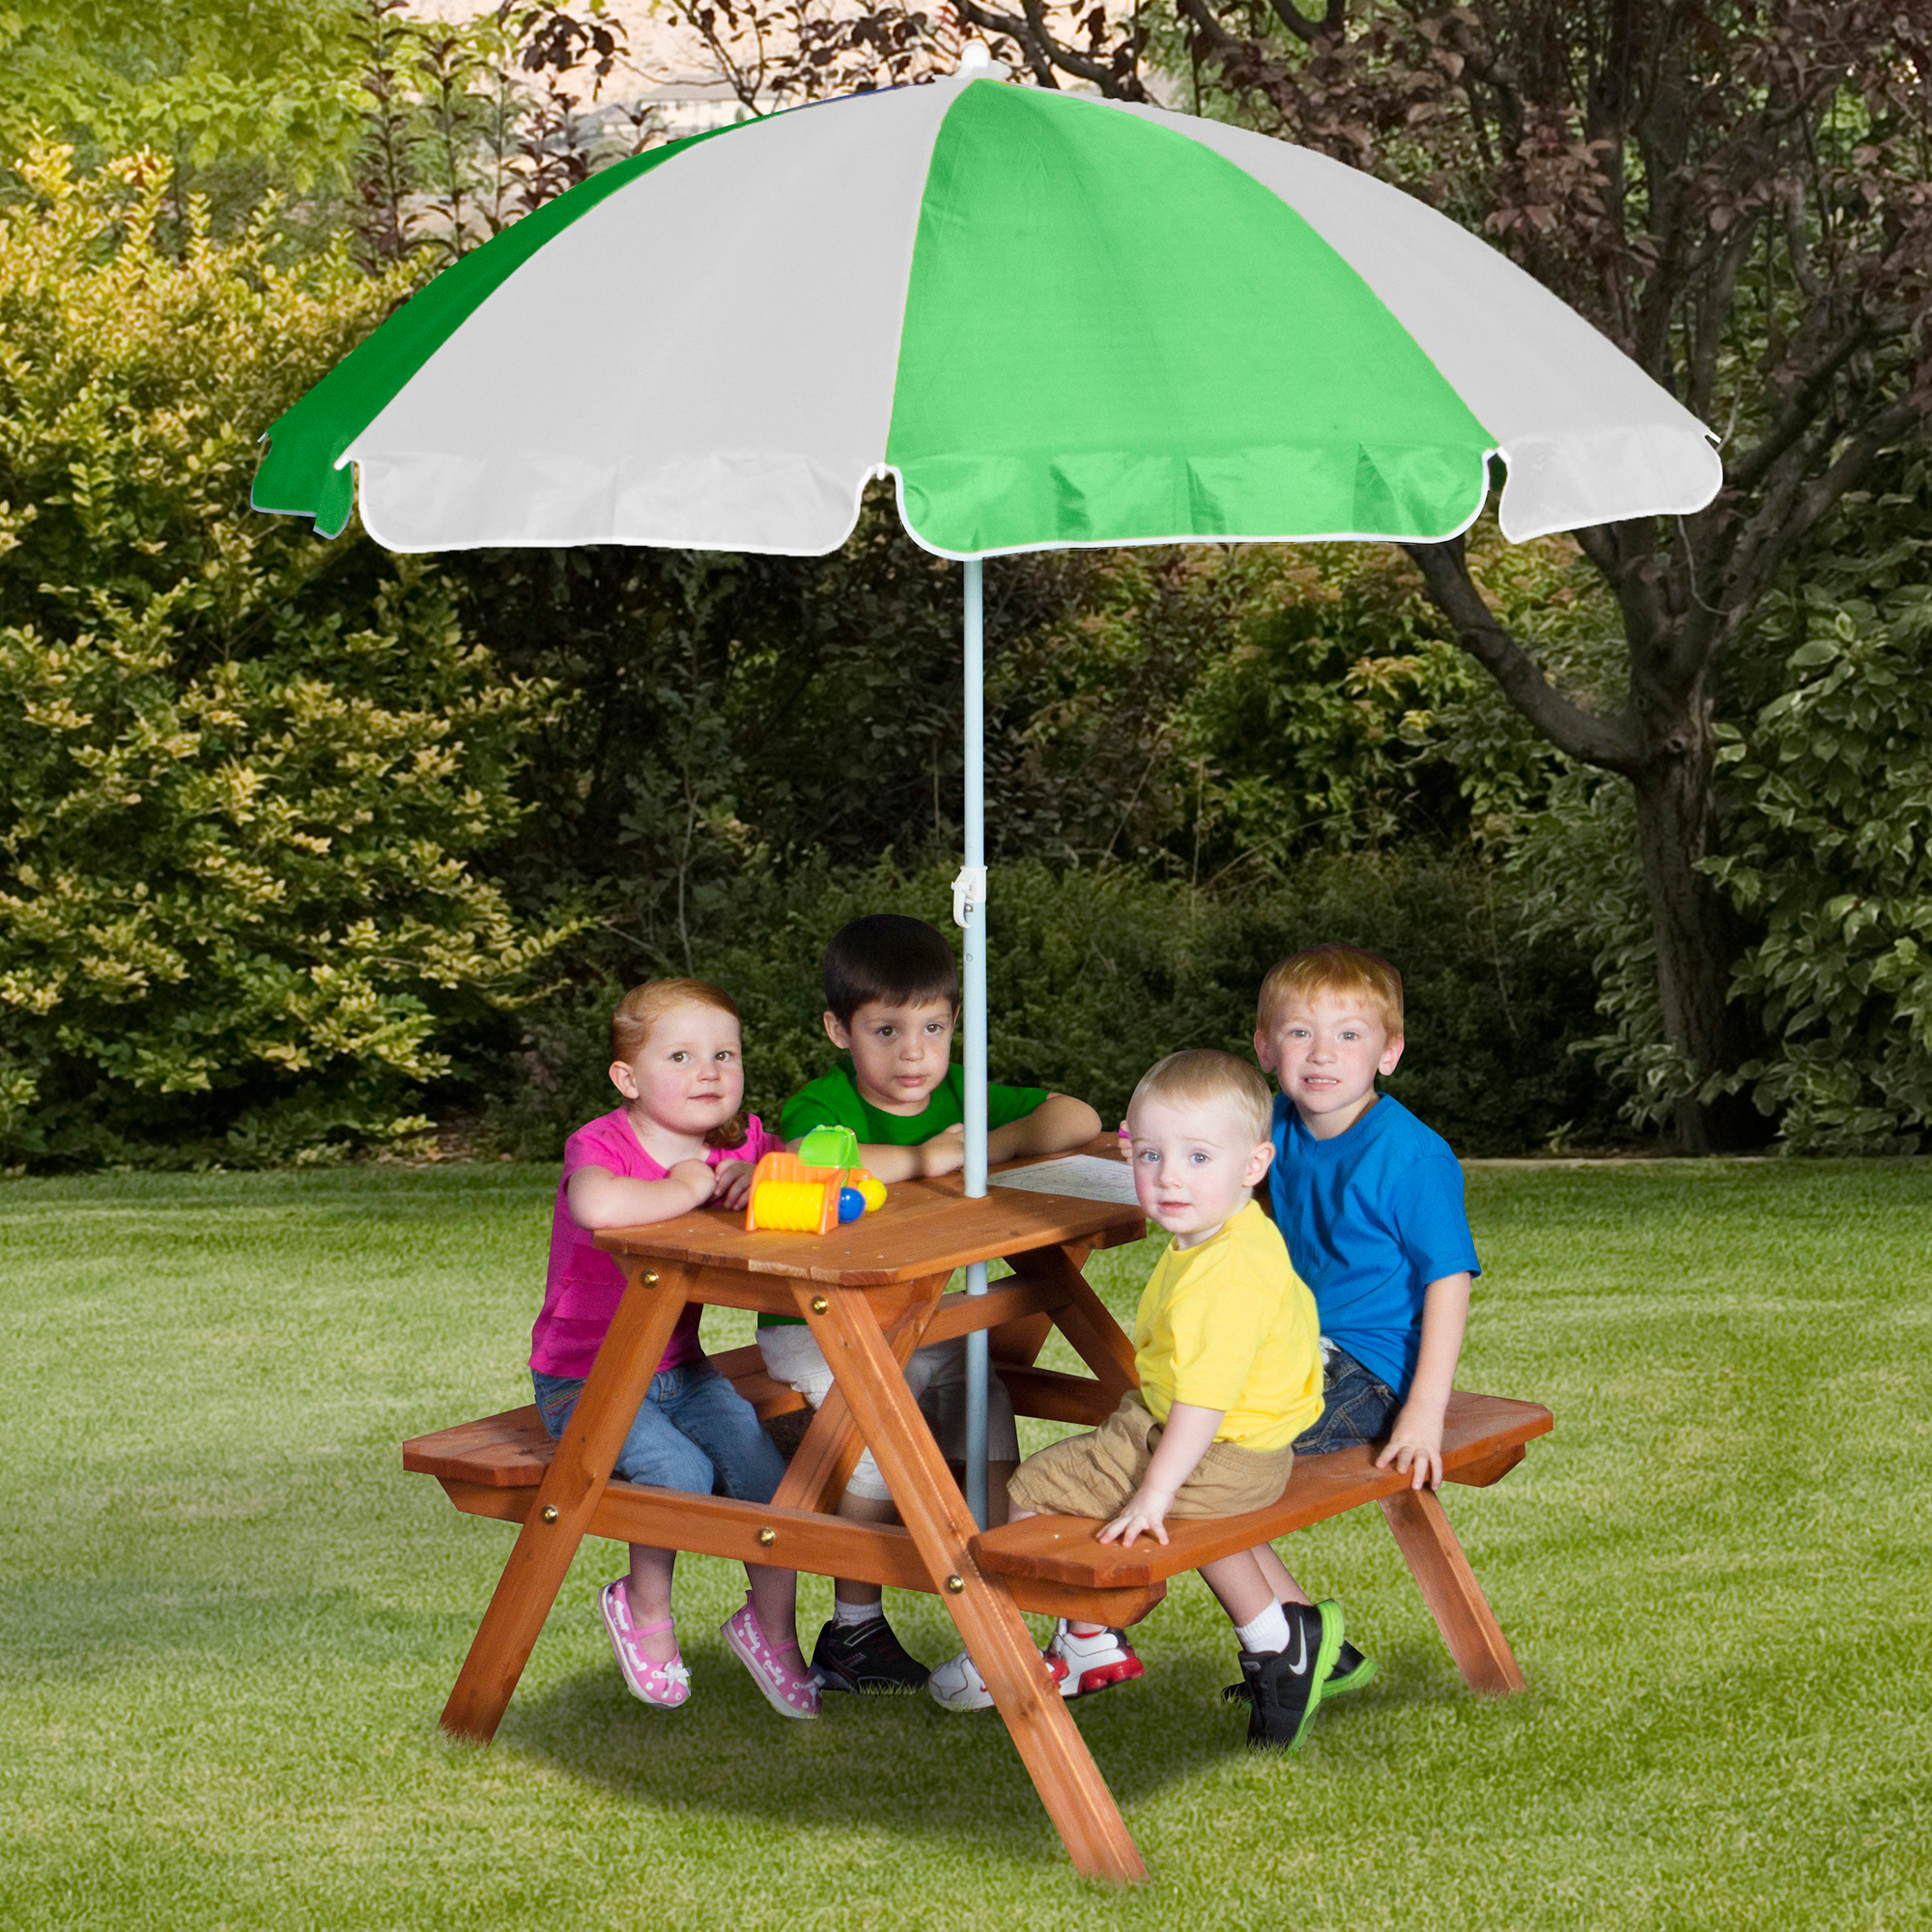 Backyard Discovery Wooden Picnic Table   Walmart.com